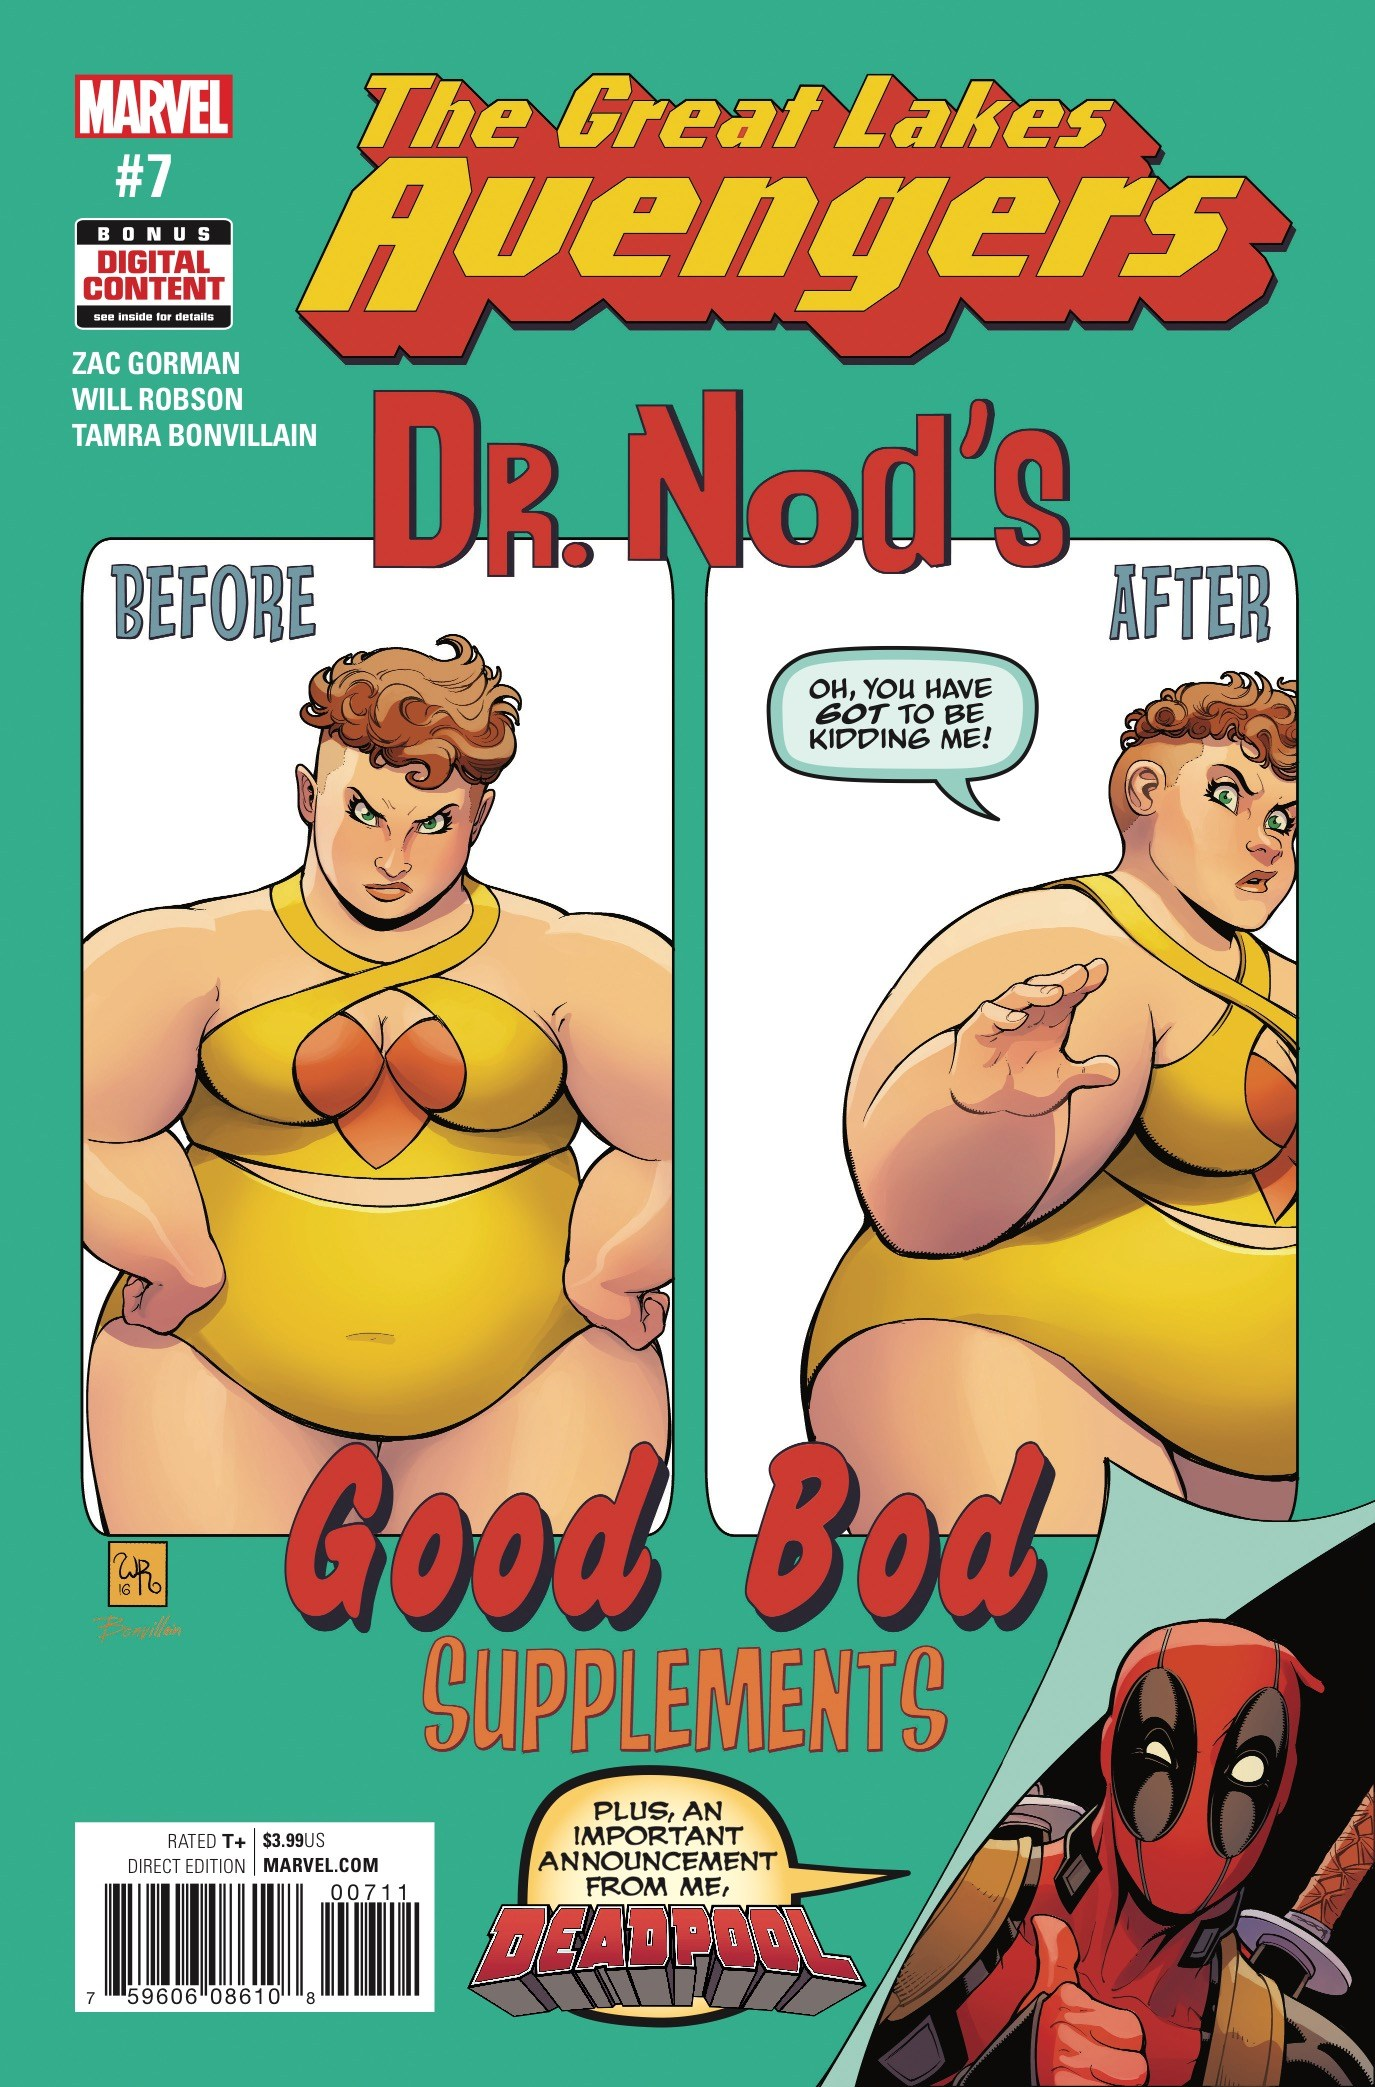 Great Lakes Avengers #7 Review